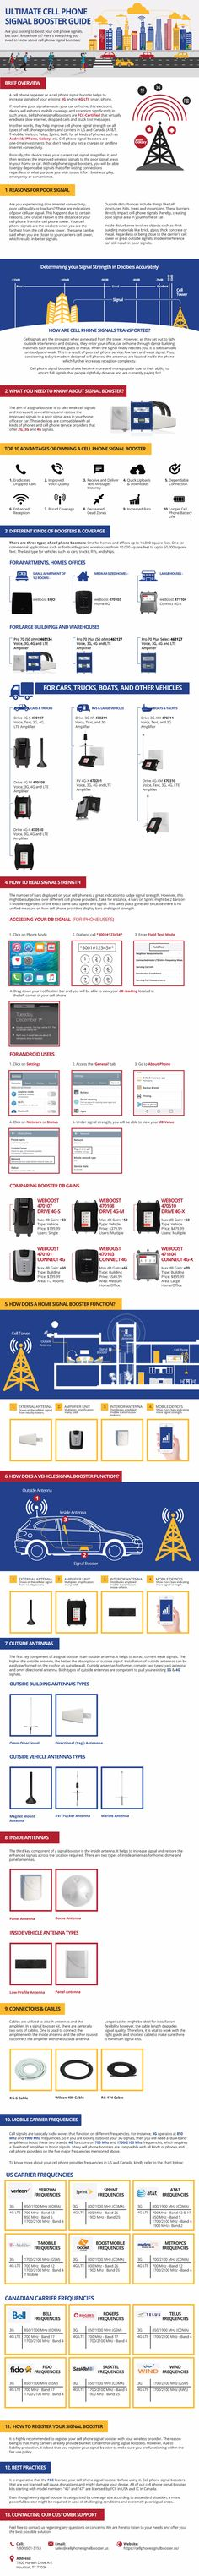 Boost your cell phone signal inside your home or workplace as well as in your car or truck. https://cellphonesignalbooster.us/cell-phone-signal-booster-guide/